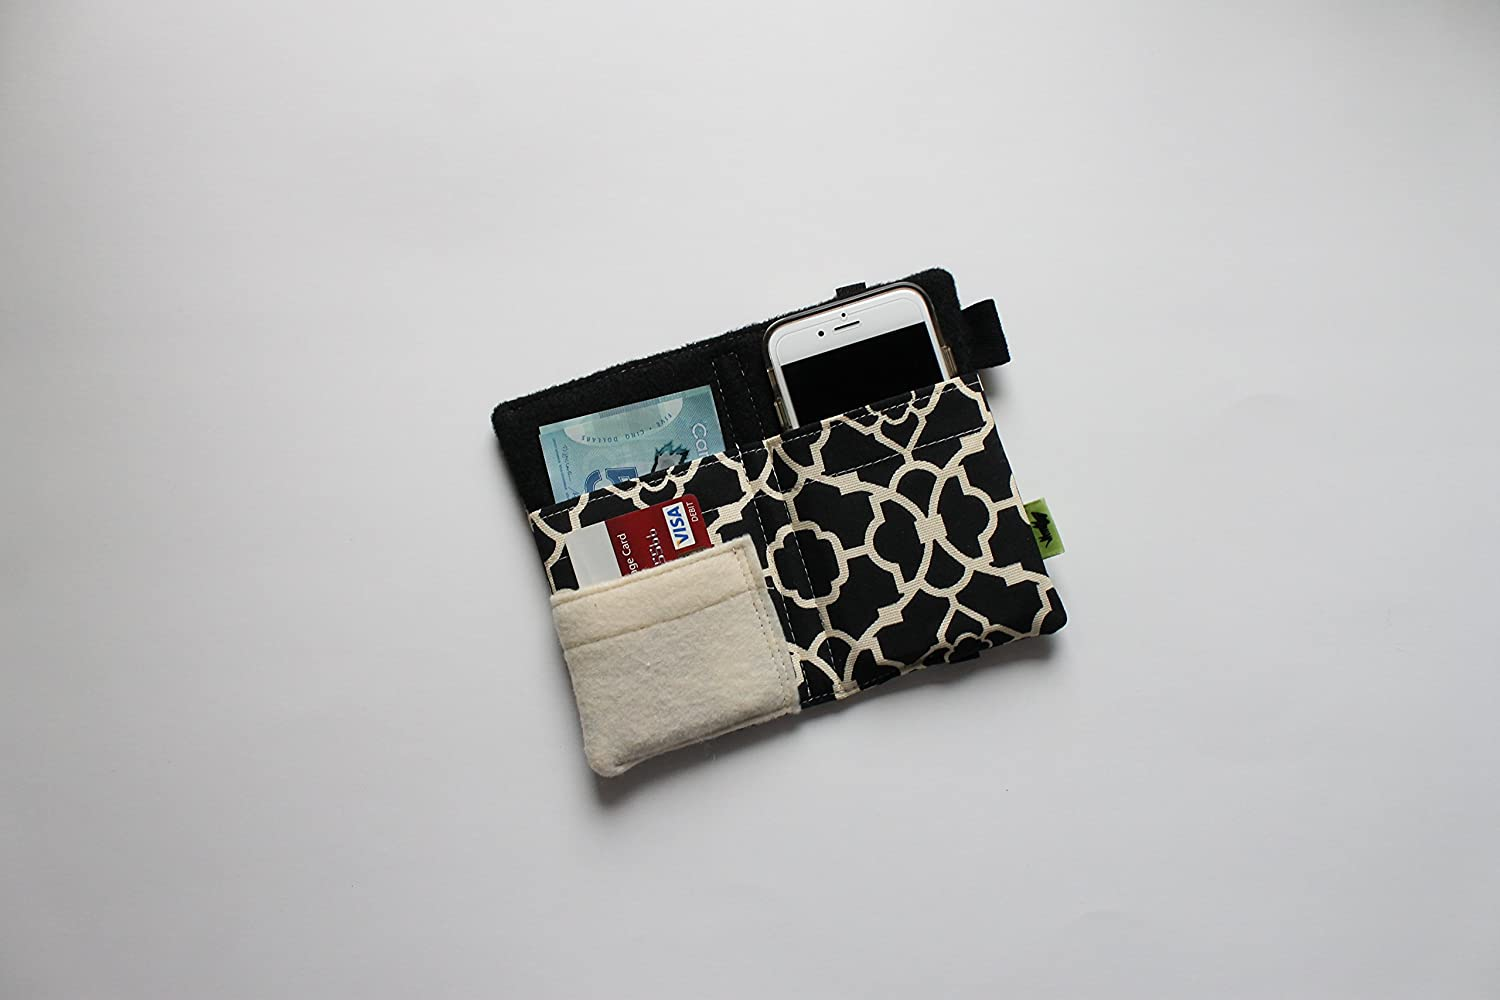 Black and White Phone Wallet Purse, Geometric Design